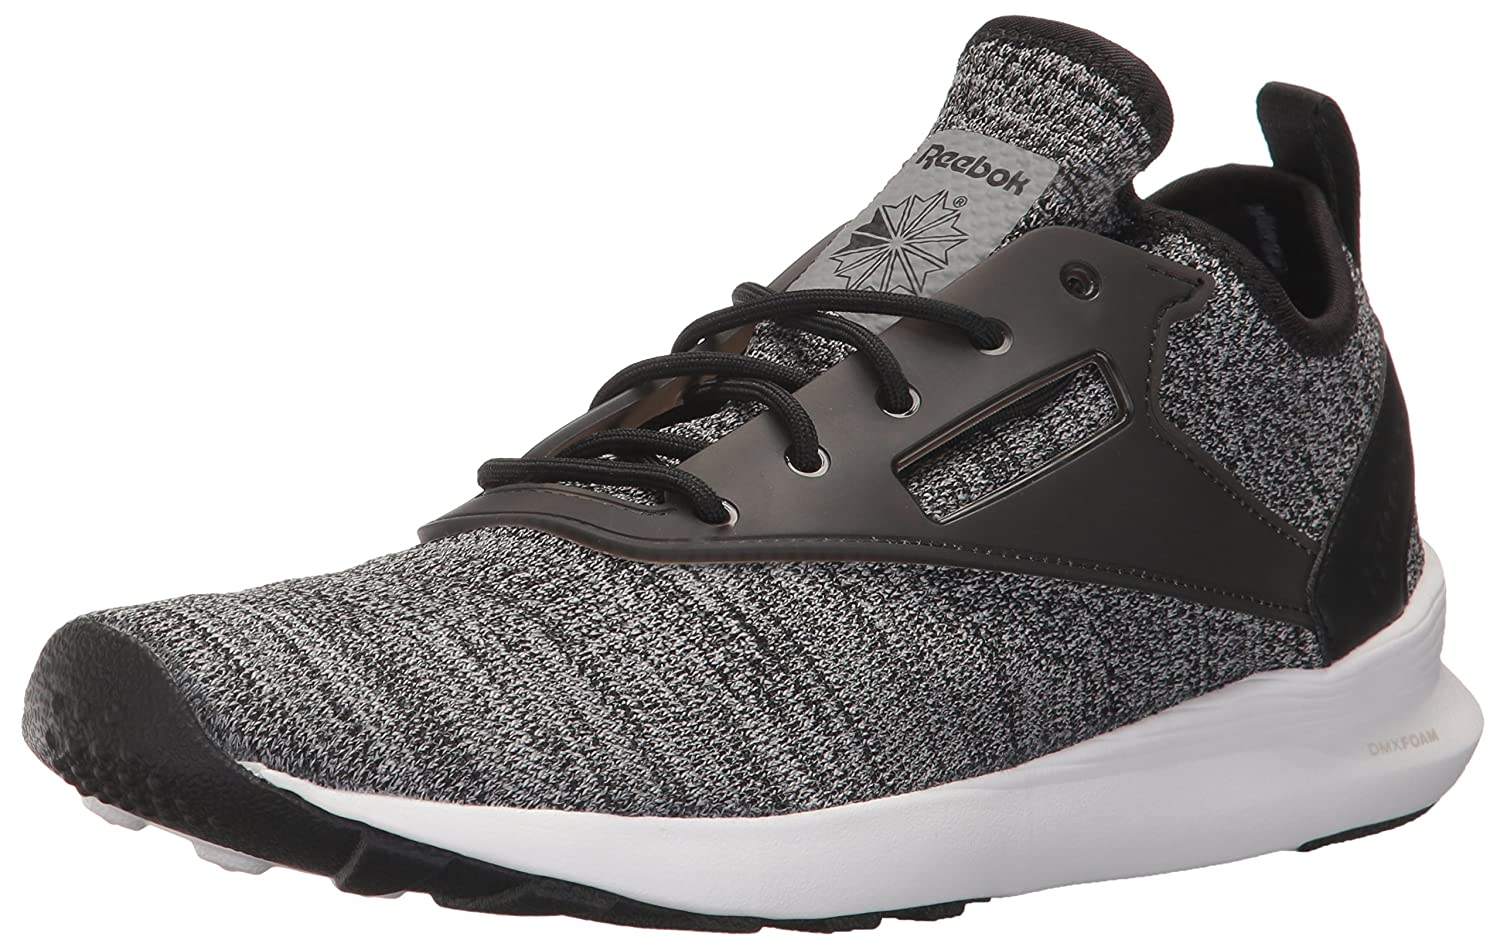 Black Flint Grey Steel Wh 10 D(M) US Reebok Mens Zoku Runner M Sneaker